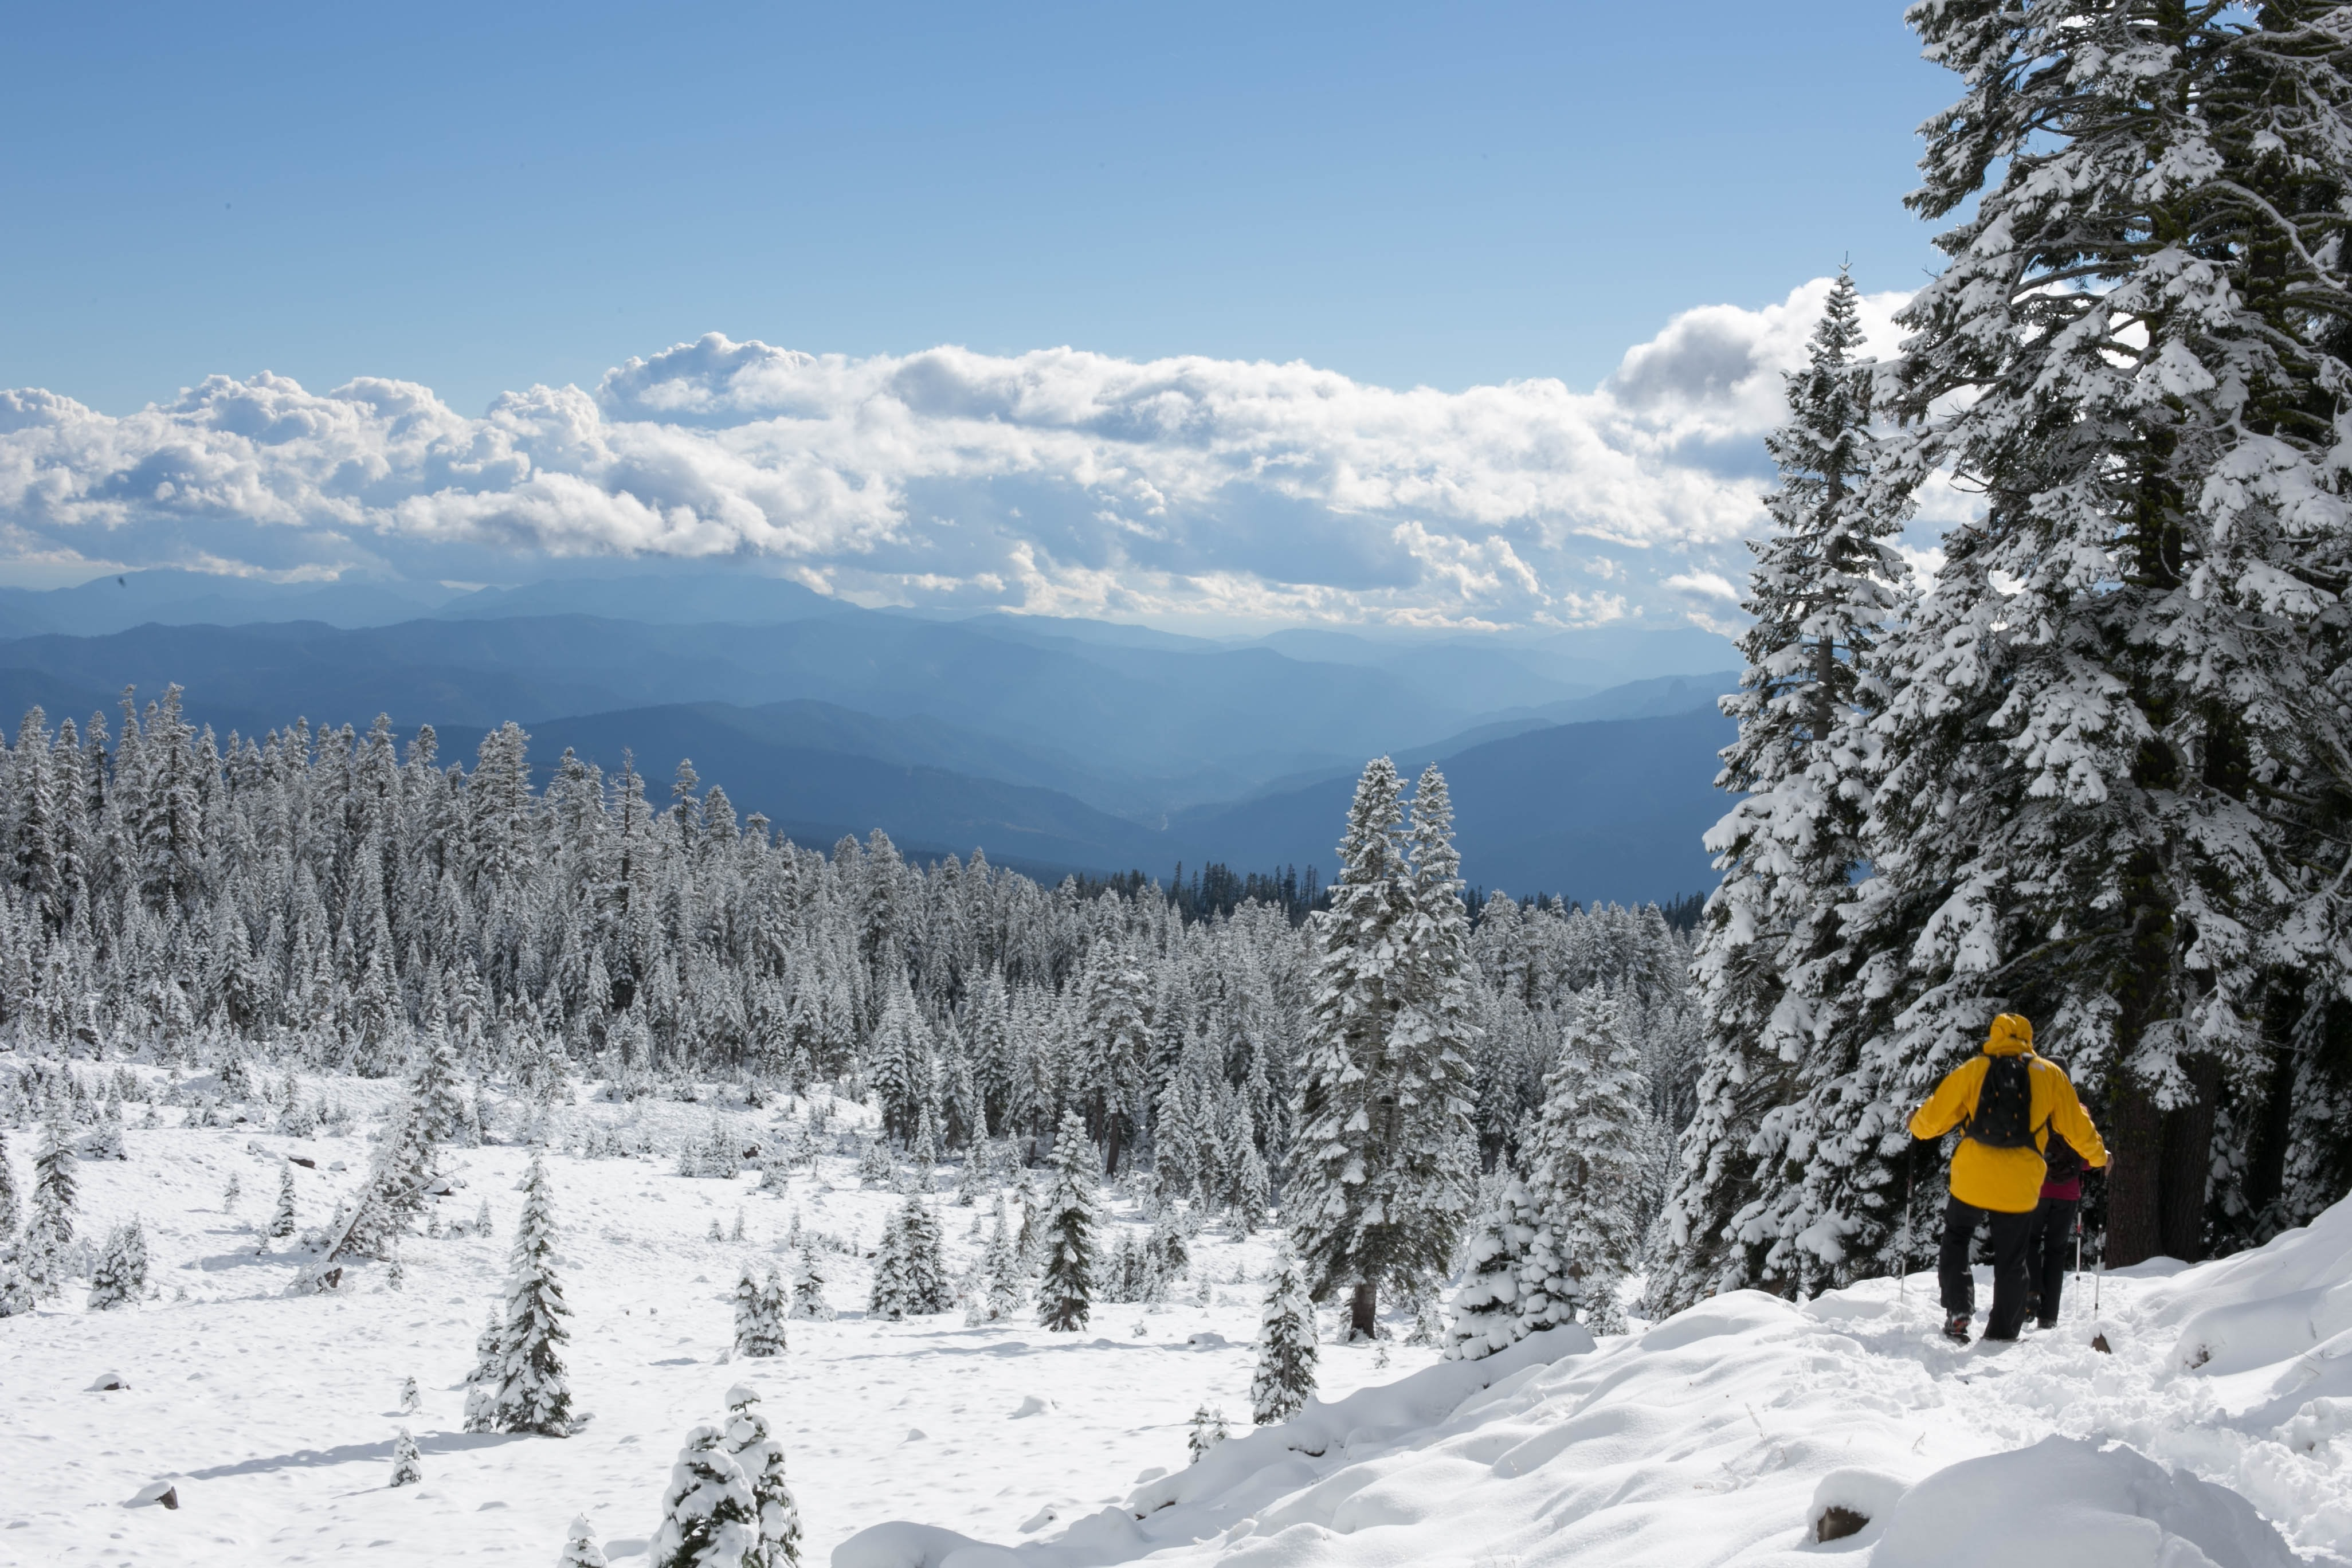 Hiker walking on the frozen snow covered ground in the forest